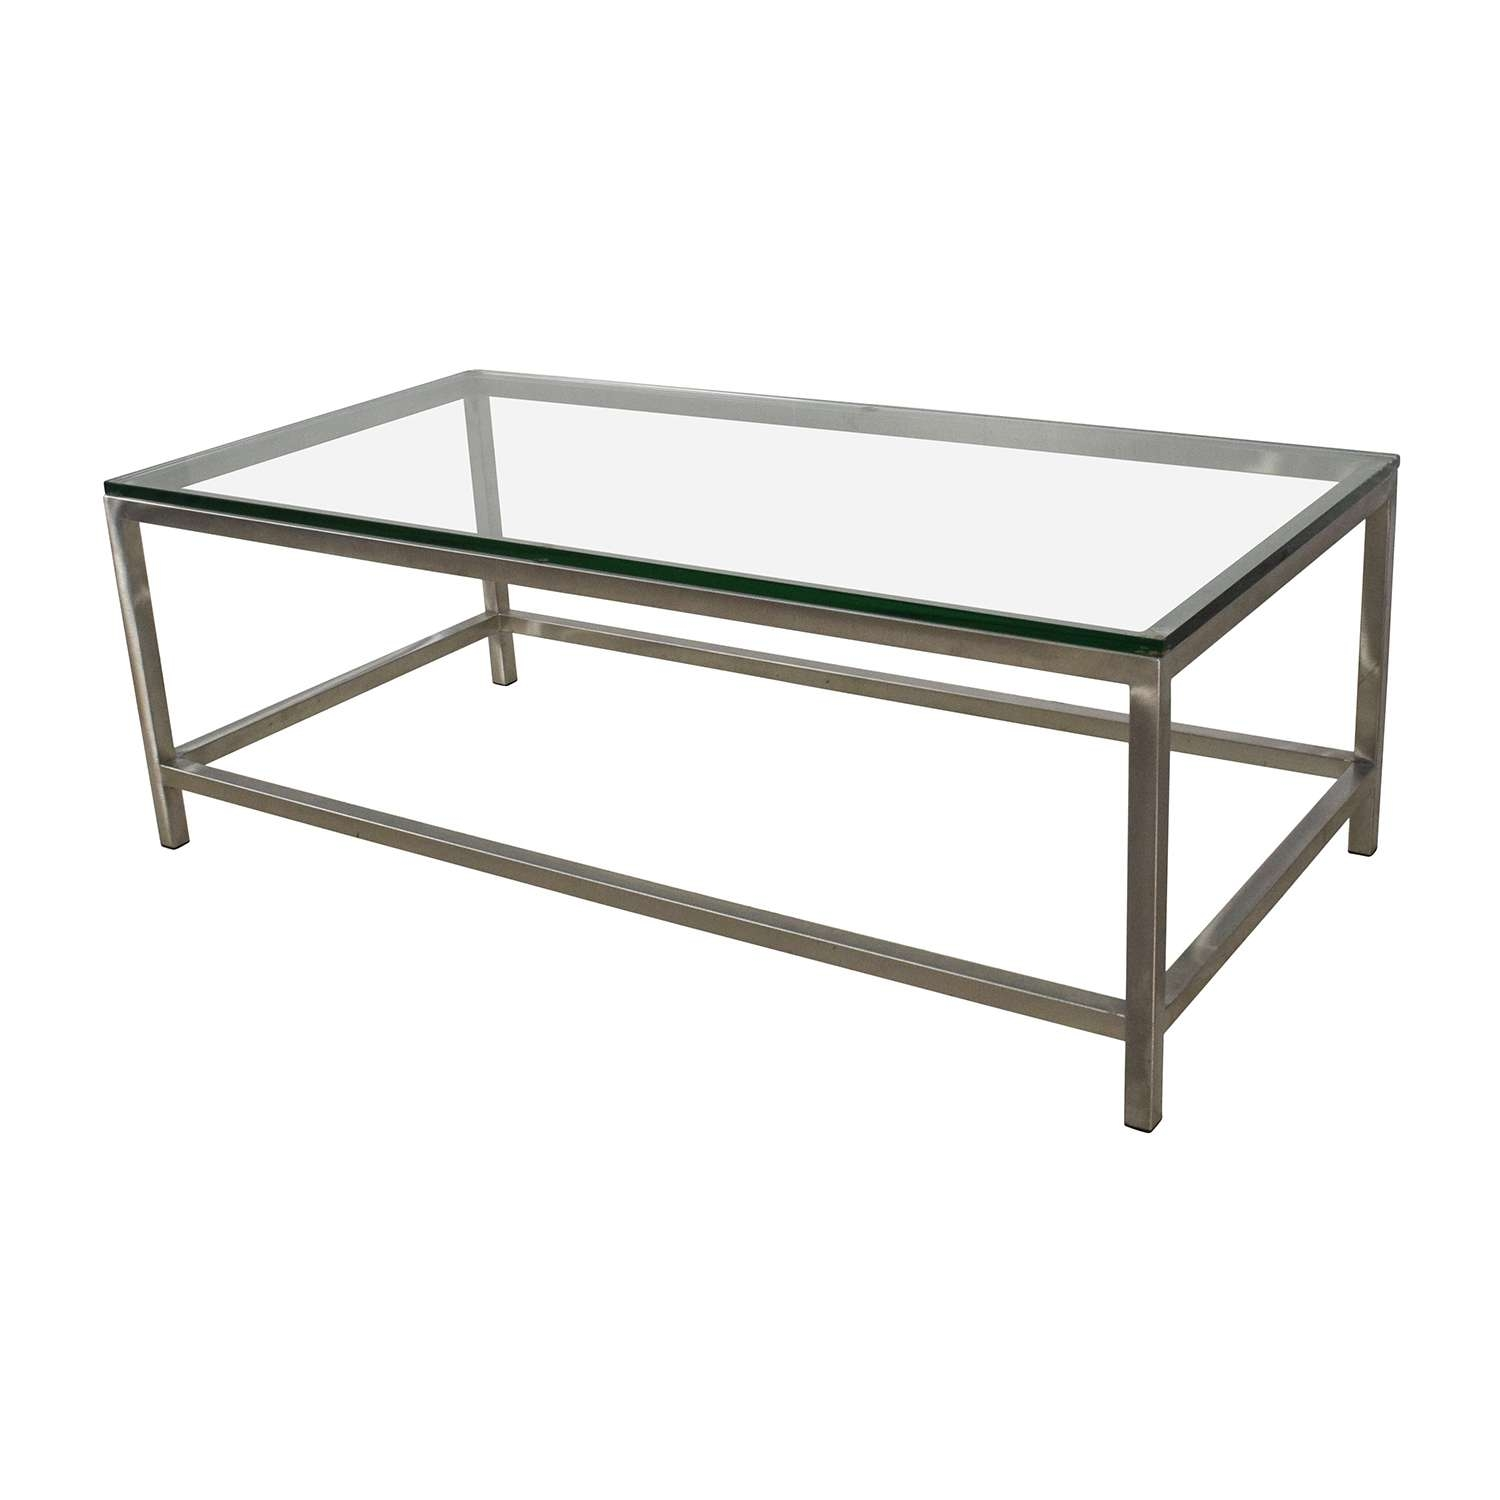 [%well Known Rectangle Glass Coffee Table Regarding 64% Off – Crate And Barrel Crate & Barrel Era Rectangular Glass|64% Off – Crate And Barrel Crate & Barrel Era Rectangular Glass In Well Known Rectangle Glass Coffee Table%] (View 10 of 20)